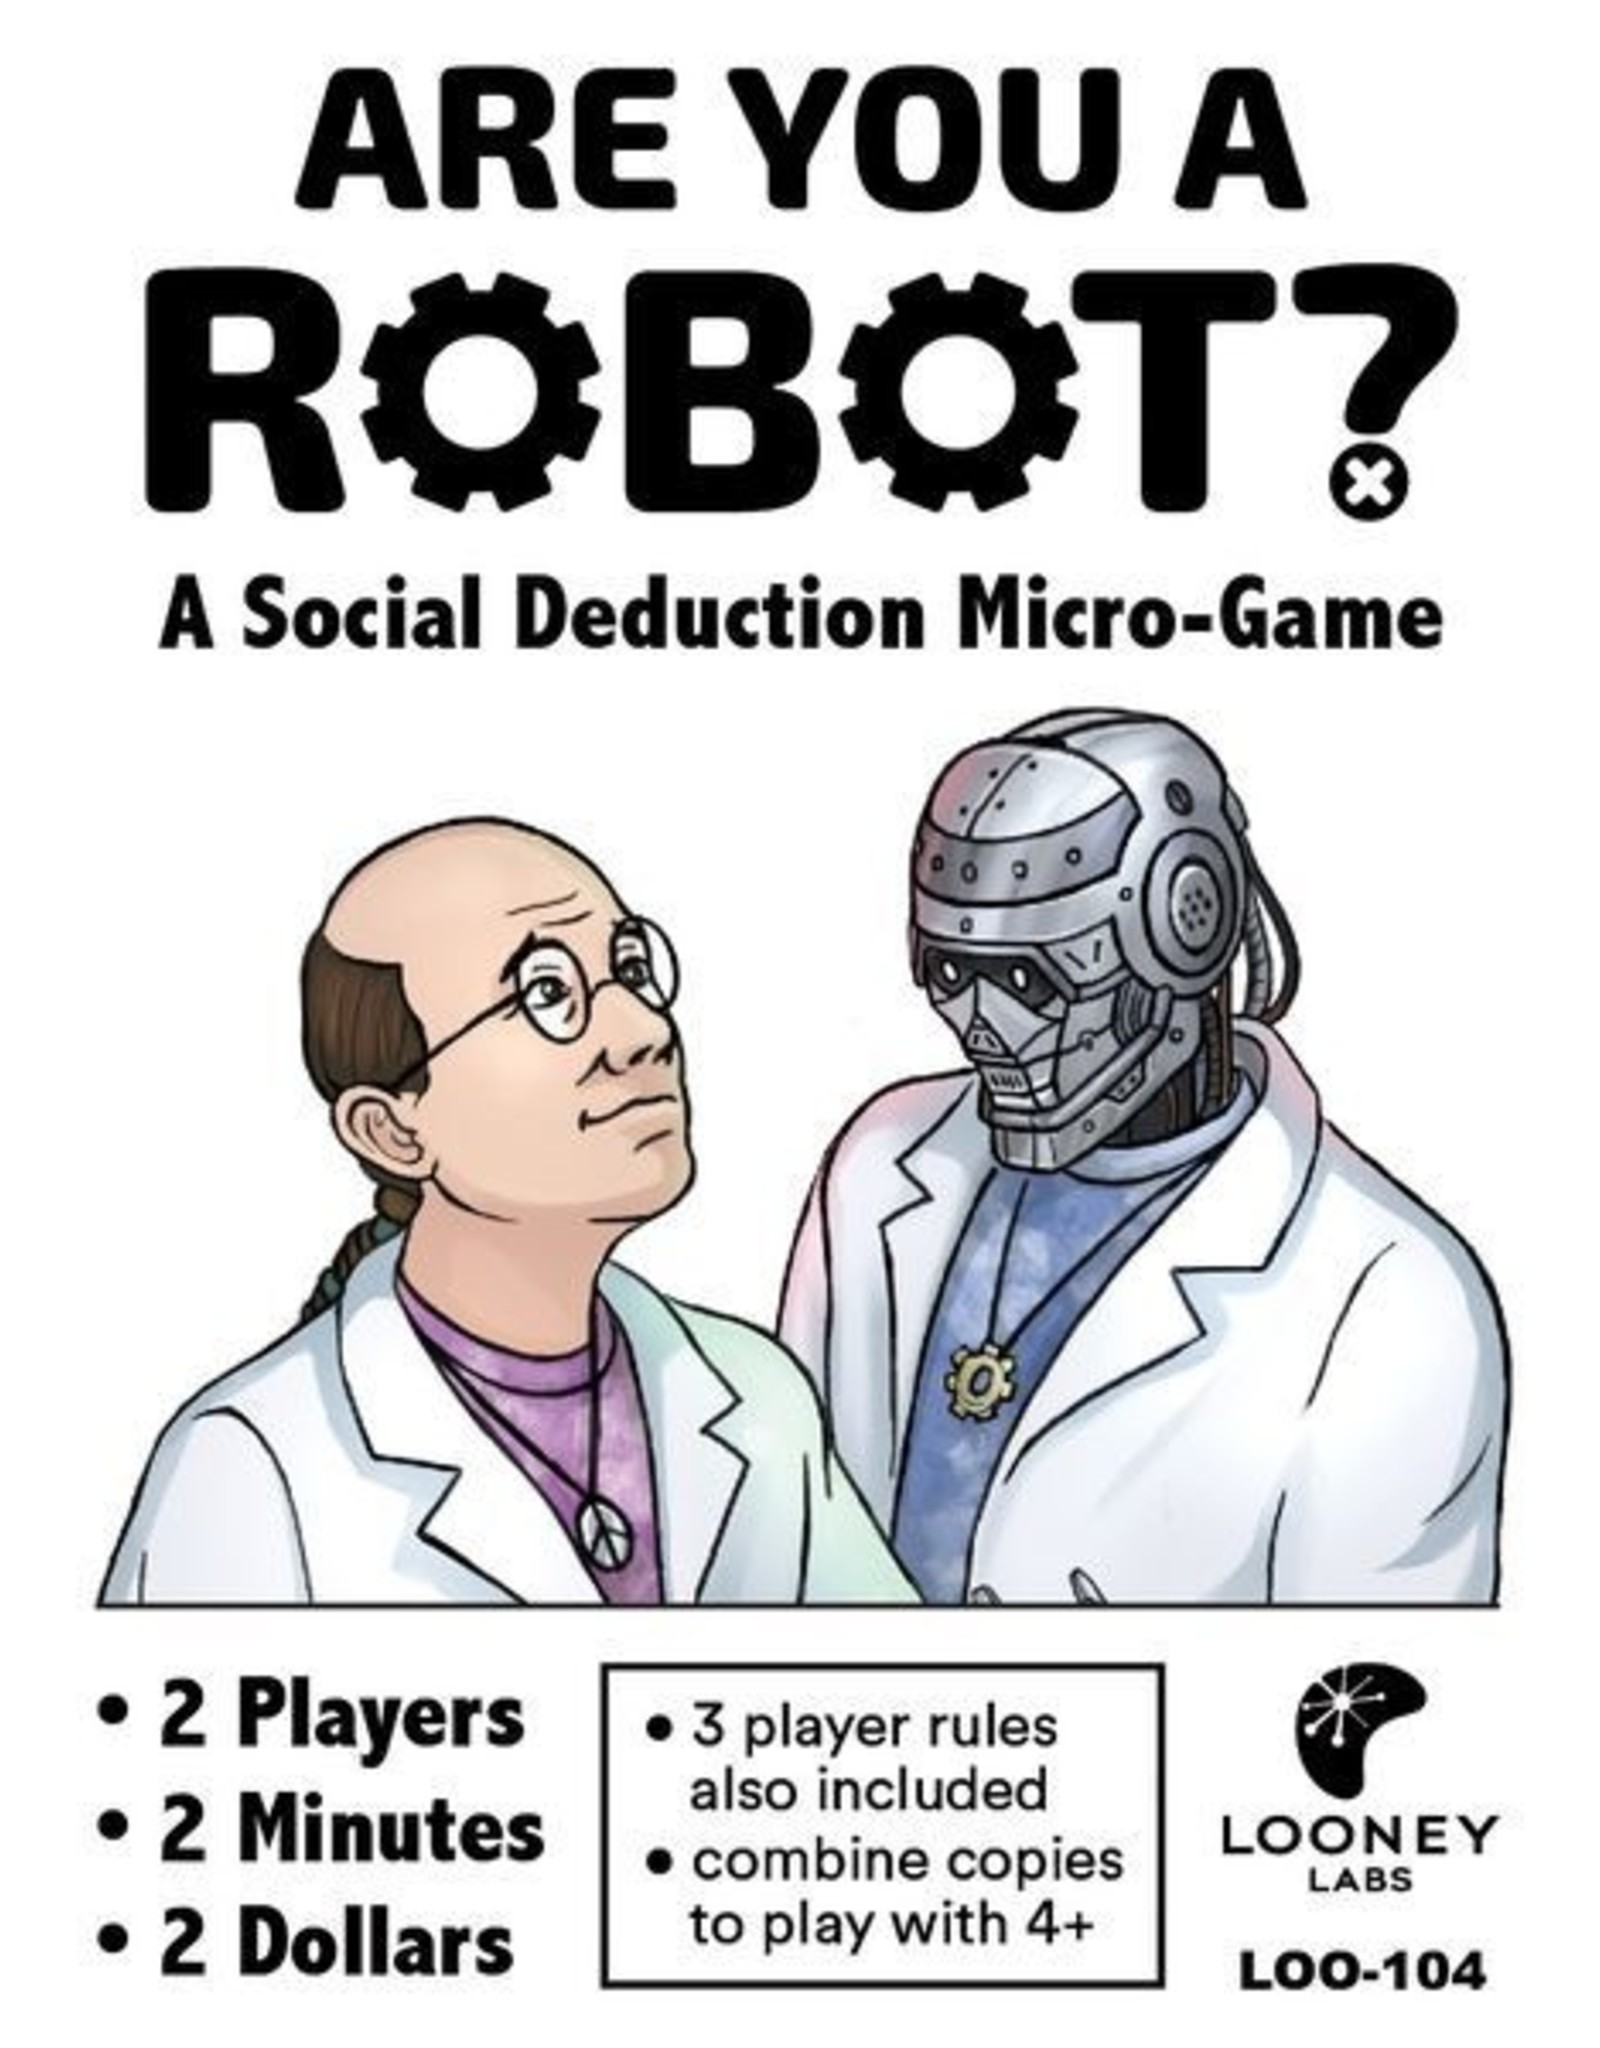 Looney Labs ARE YOU A ROBOT: 10 PLAYER EDITION